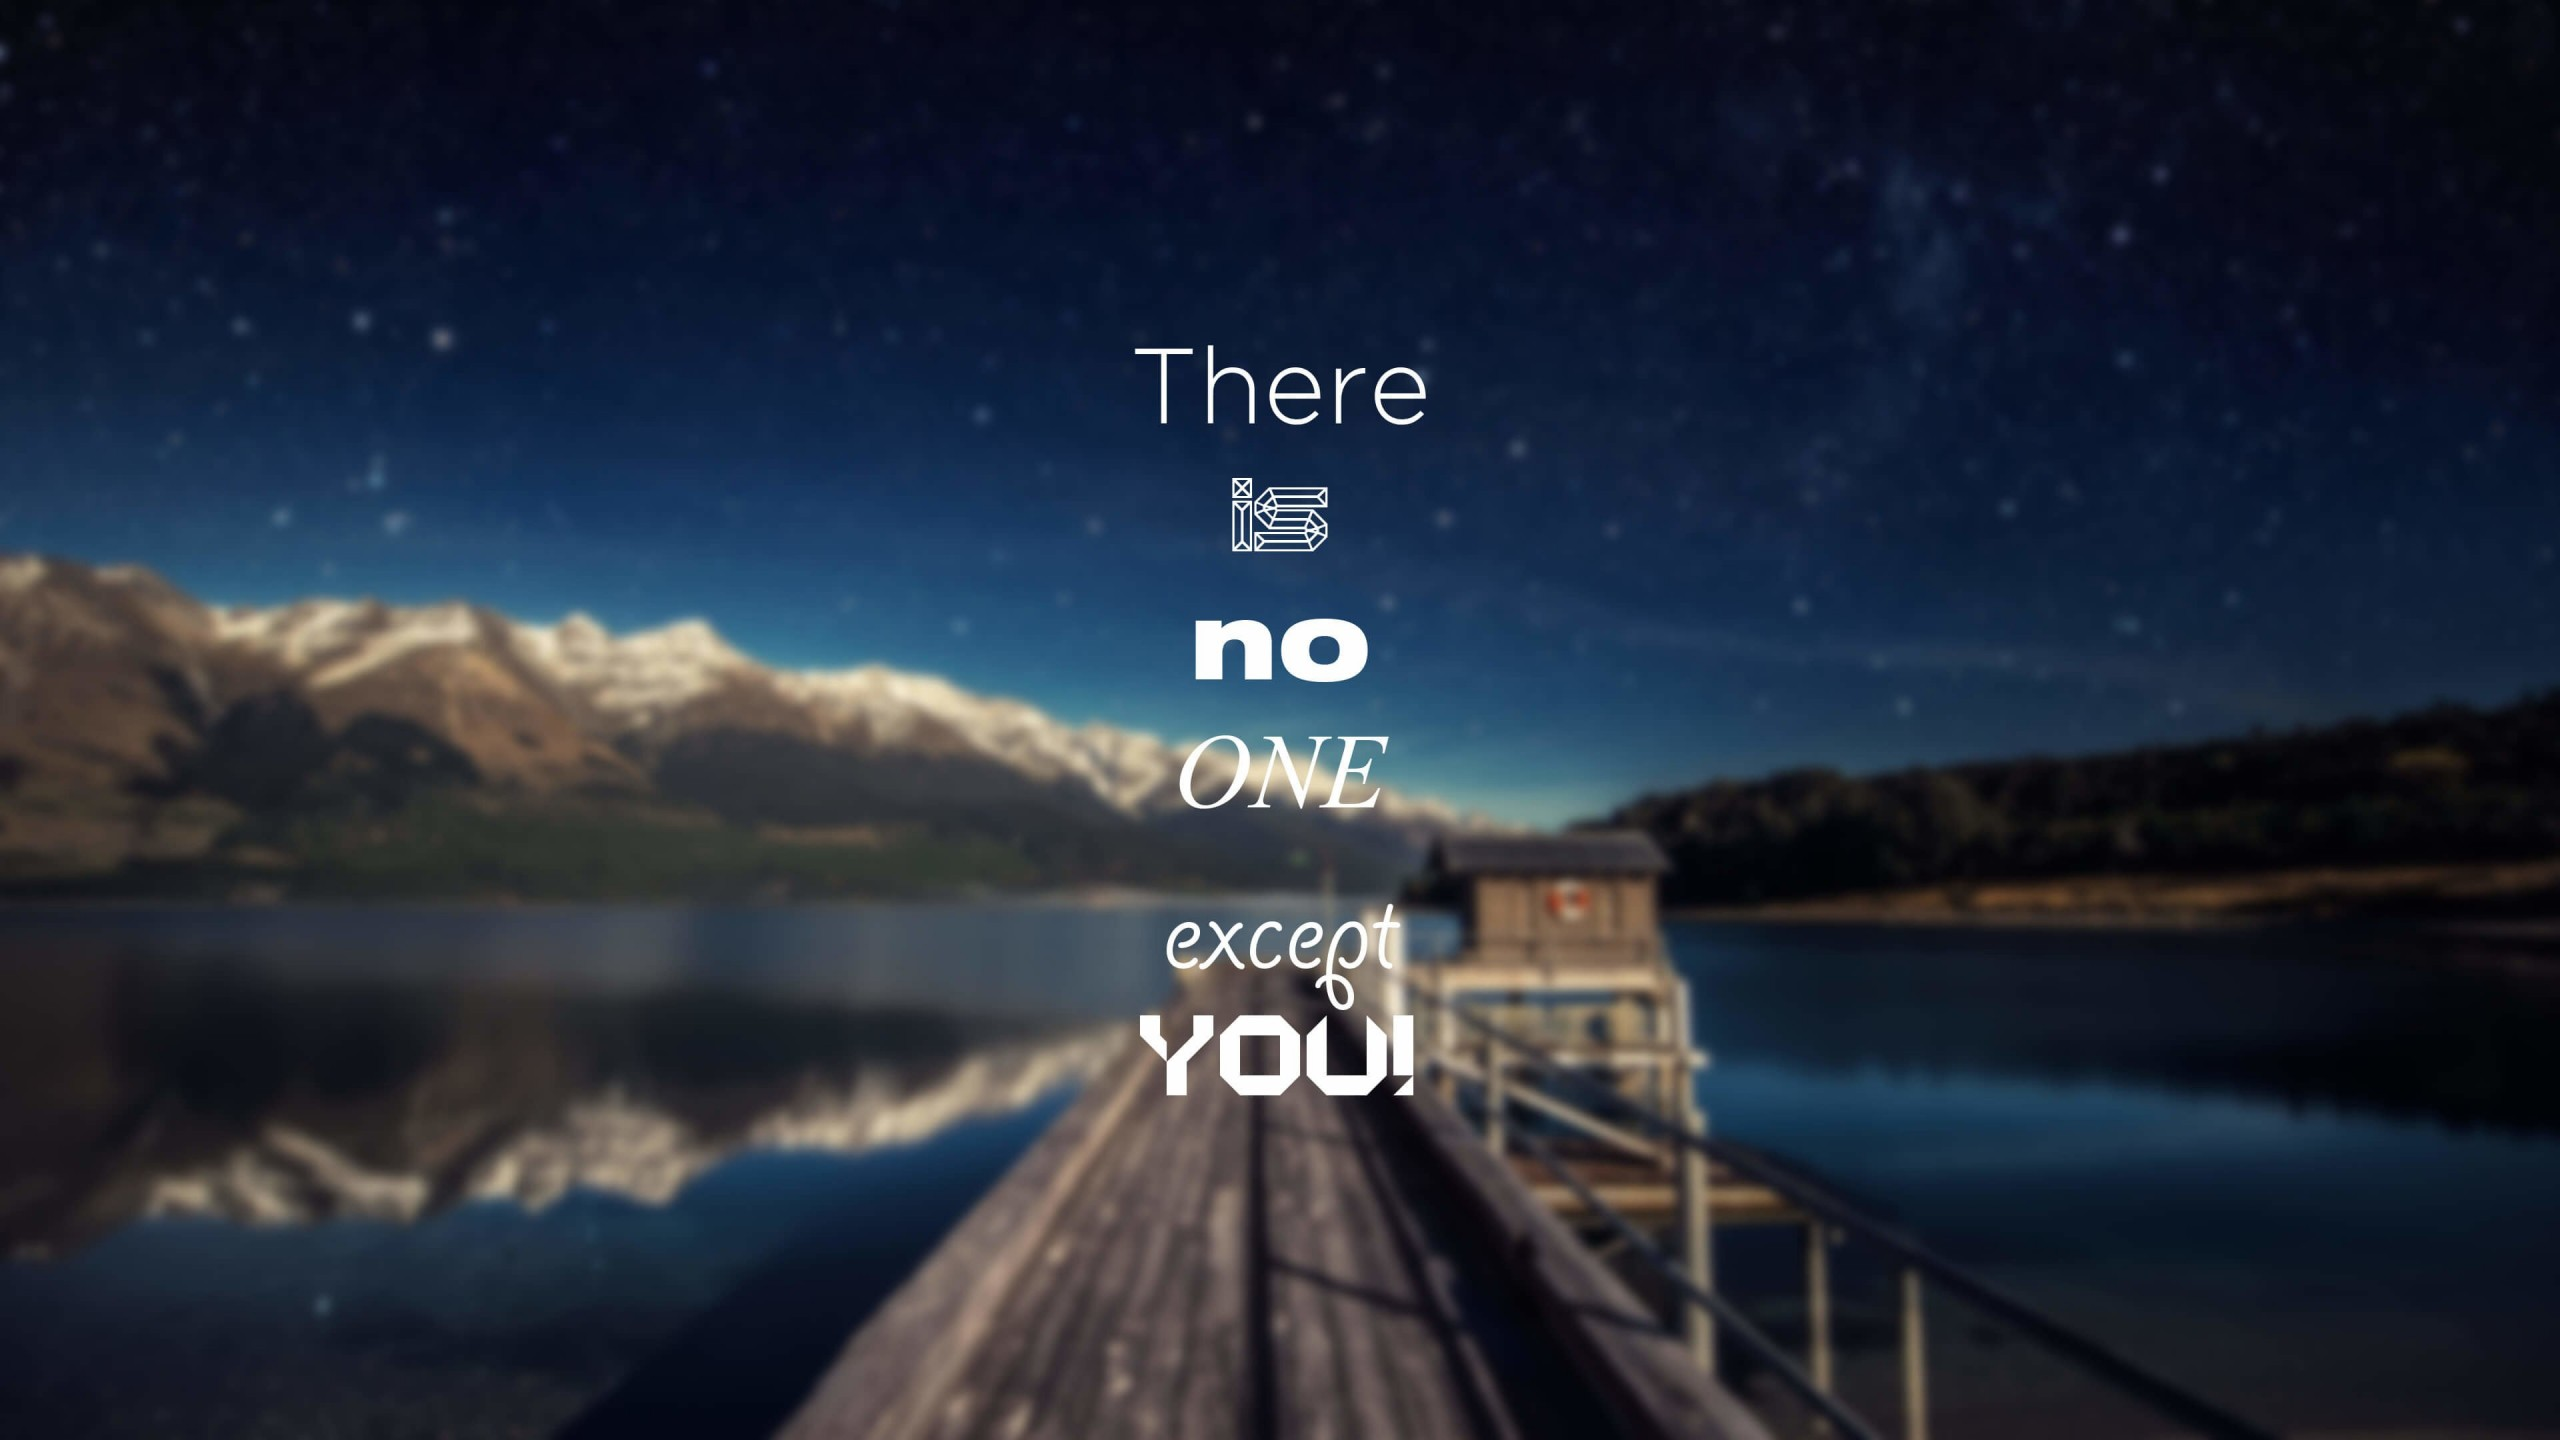 There Is No One Except You Wallpaper for Desktop 2560x1440